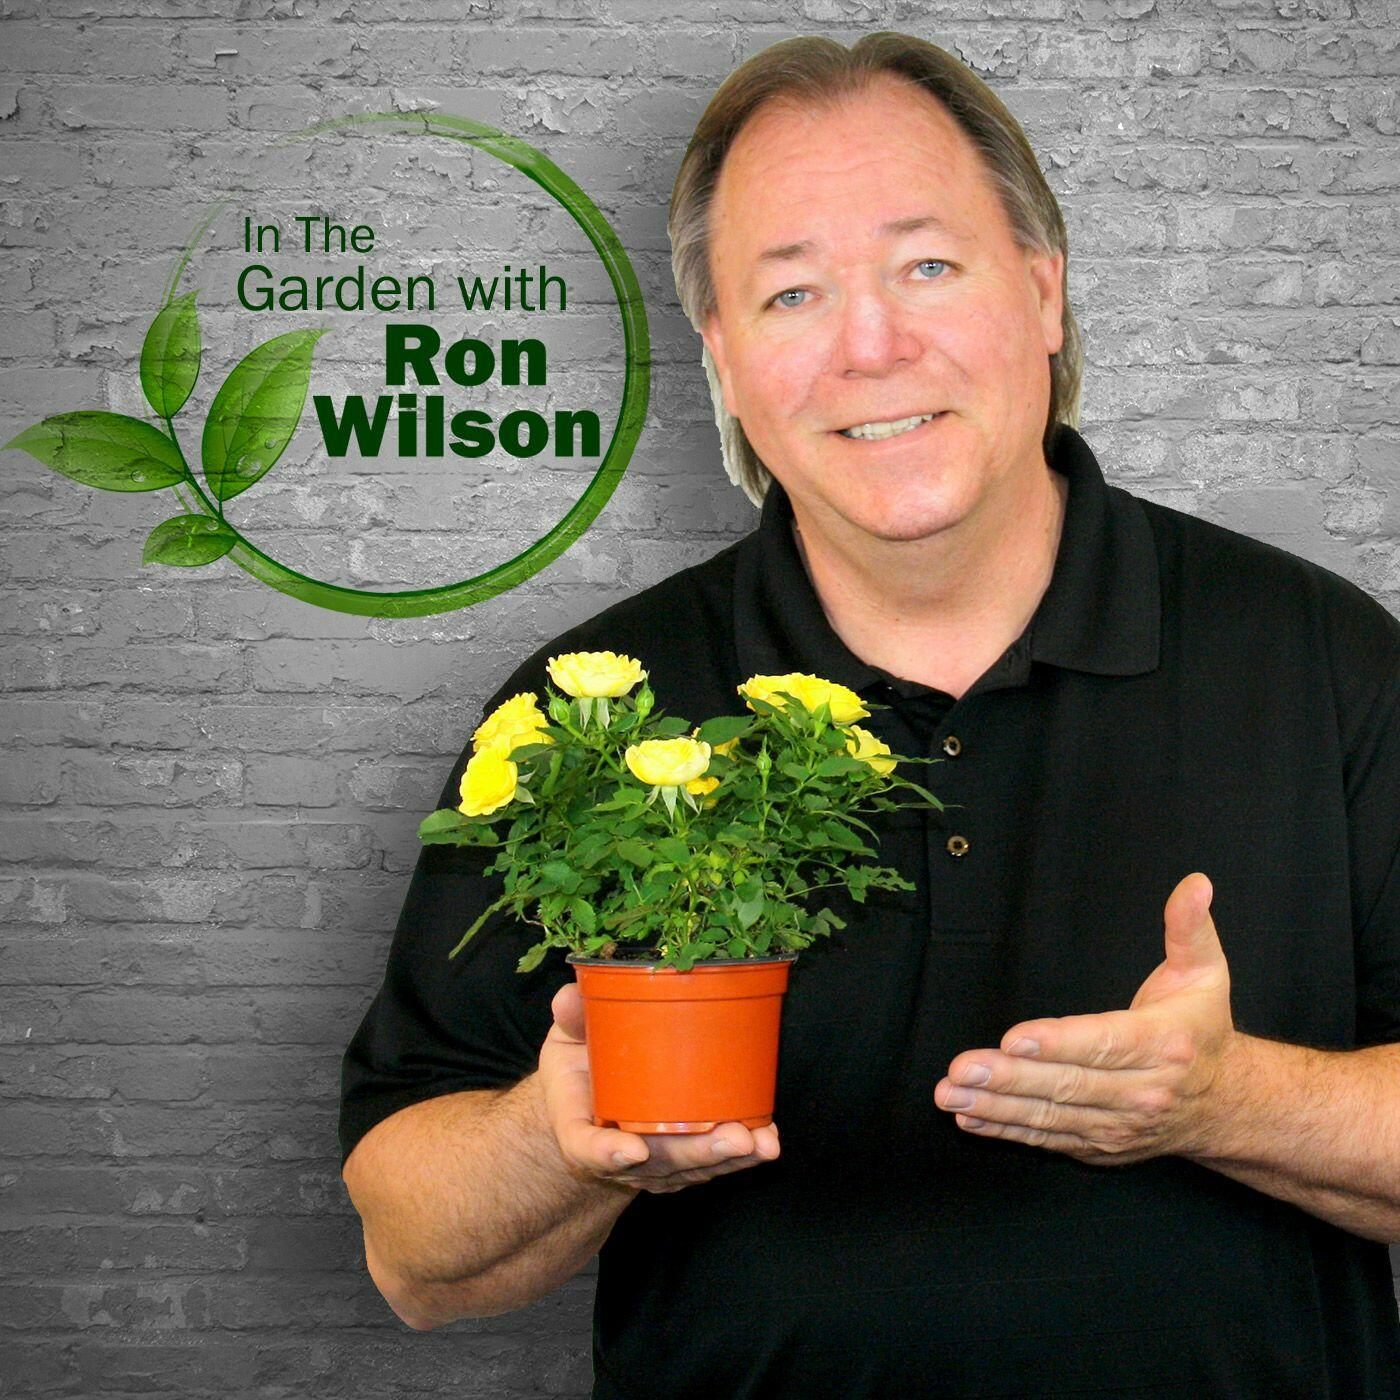 listen free to in the garden with ron wilson on